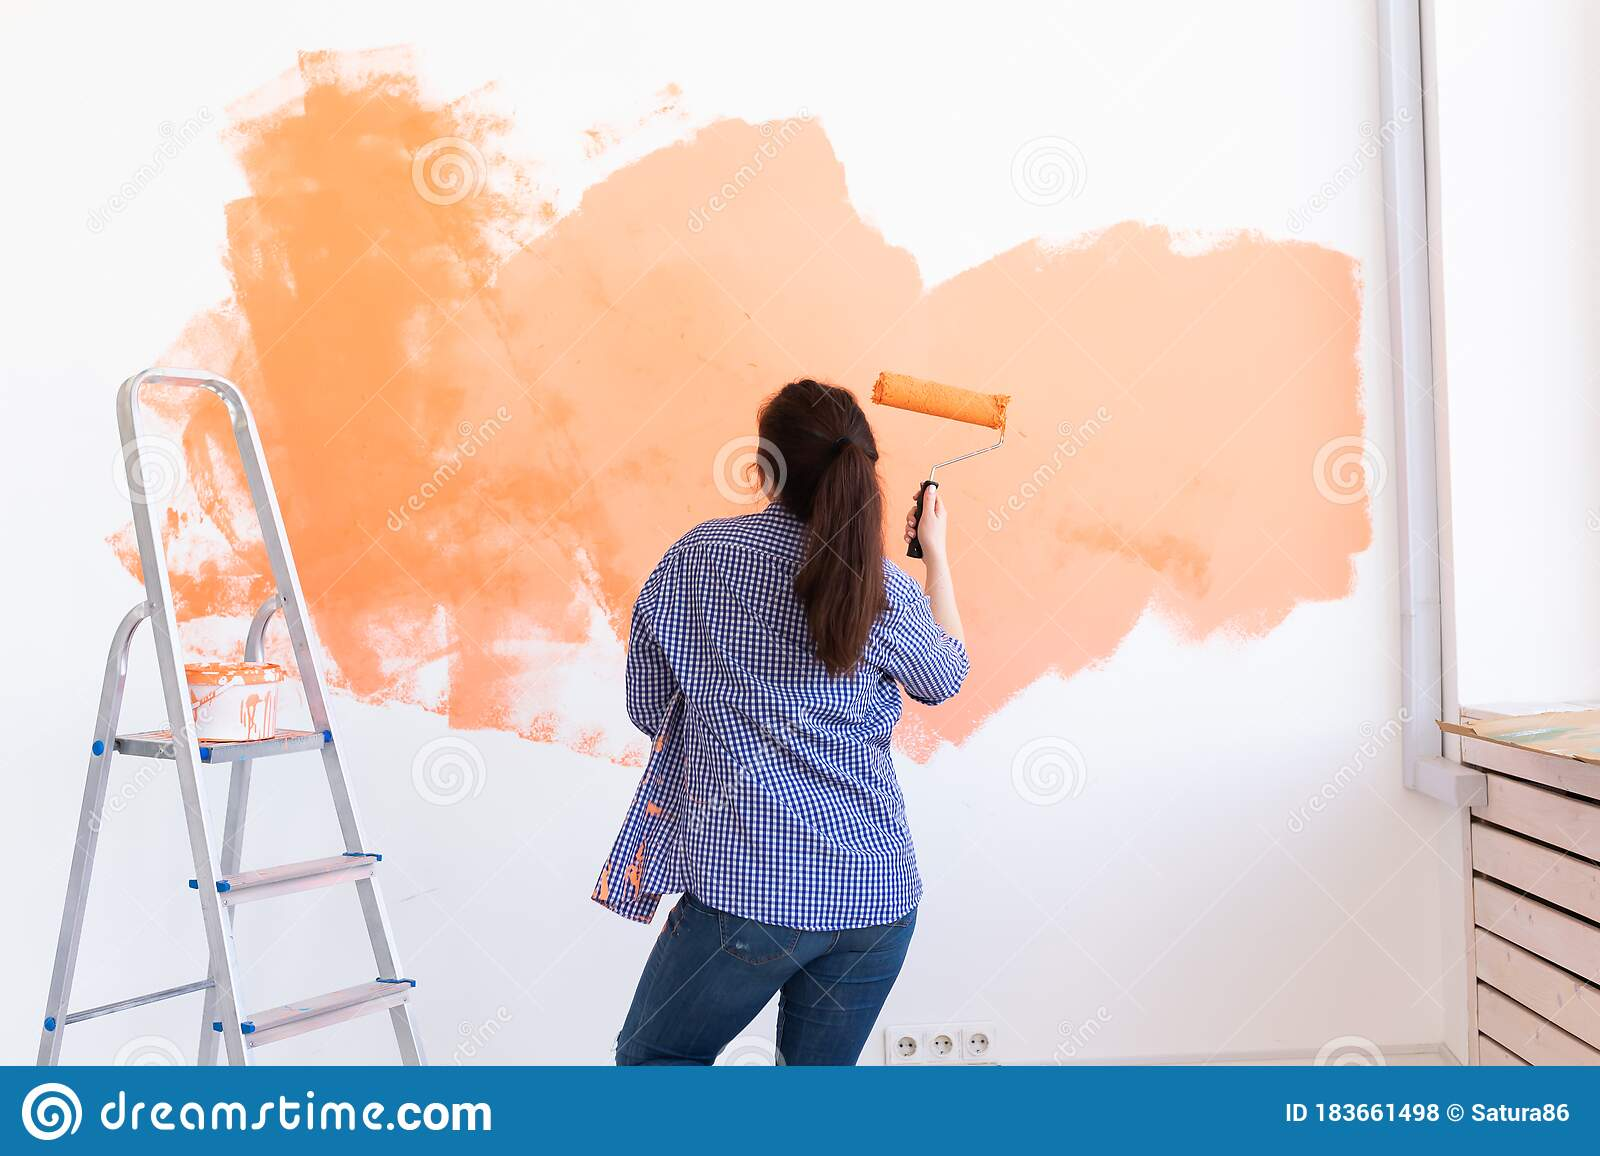 300 Woman Painting Wall Funny Photos - Free & Royalty-Free Stock Photos from Dreamstime